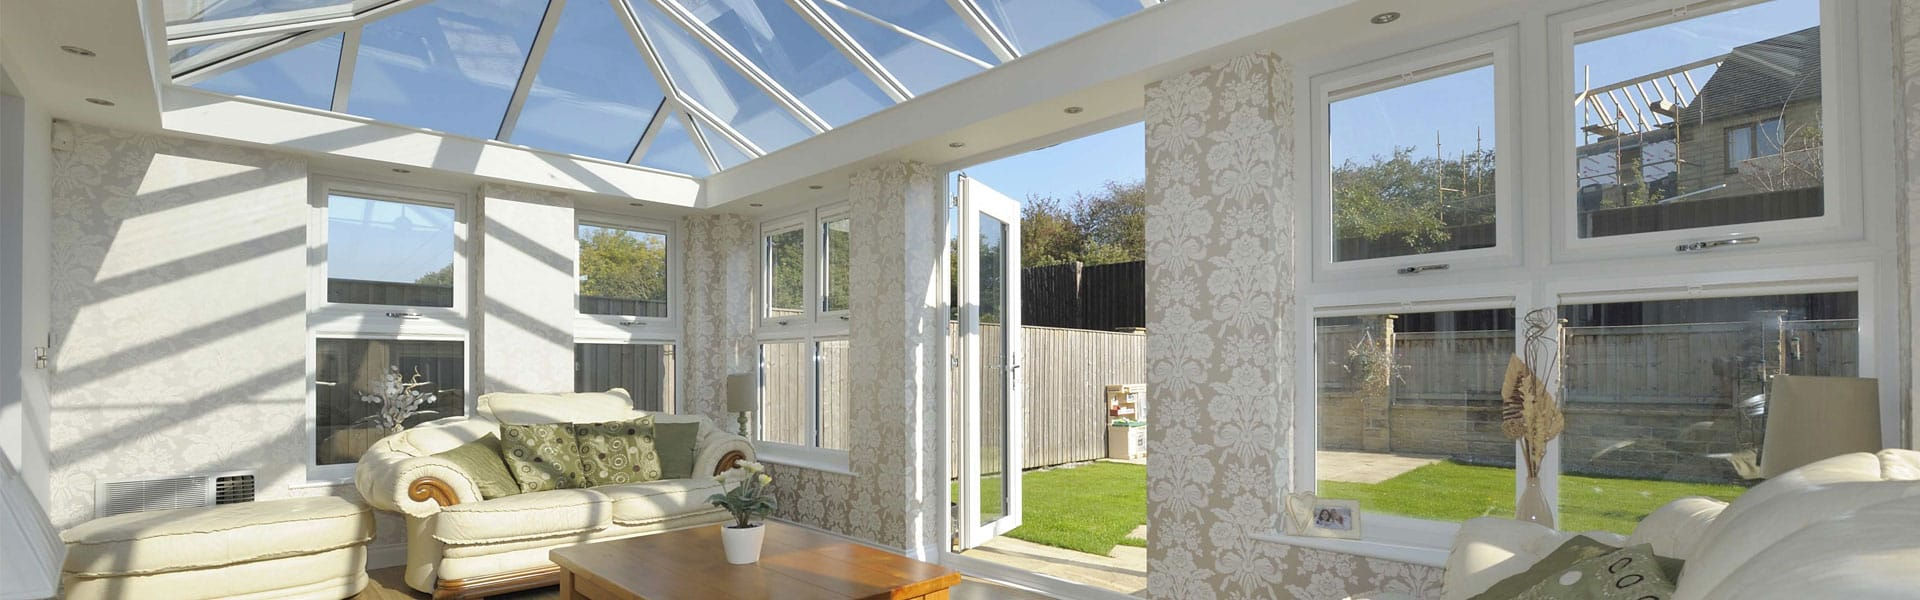 Conservatories Edinburgh